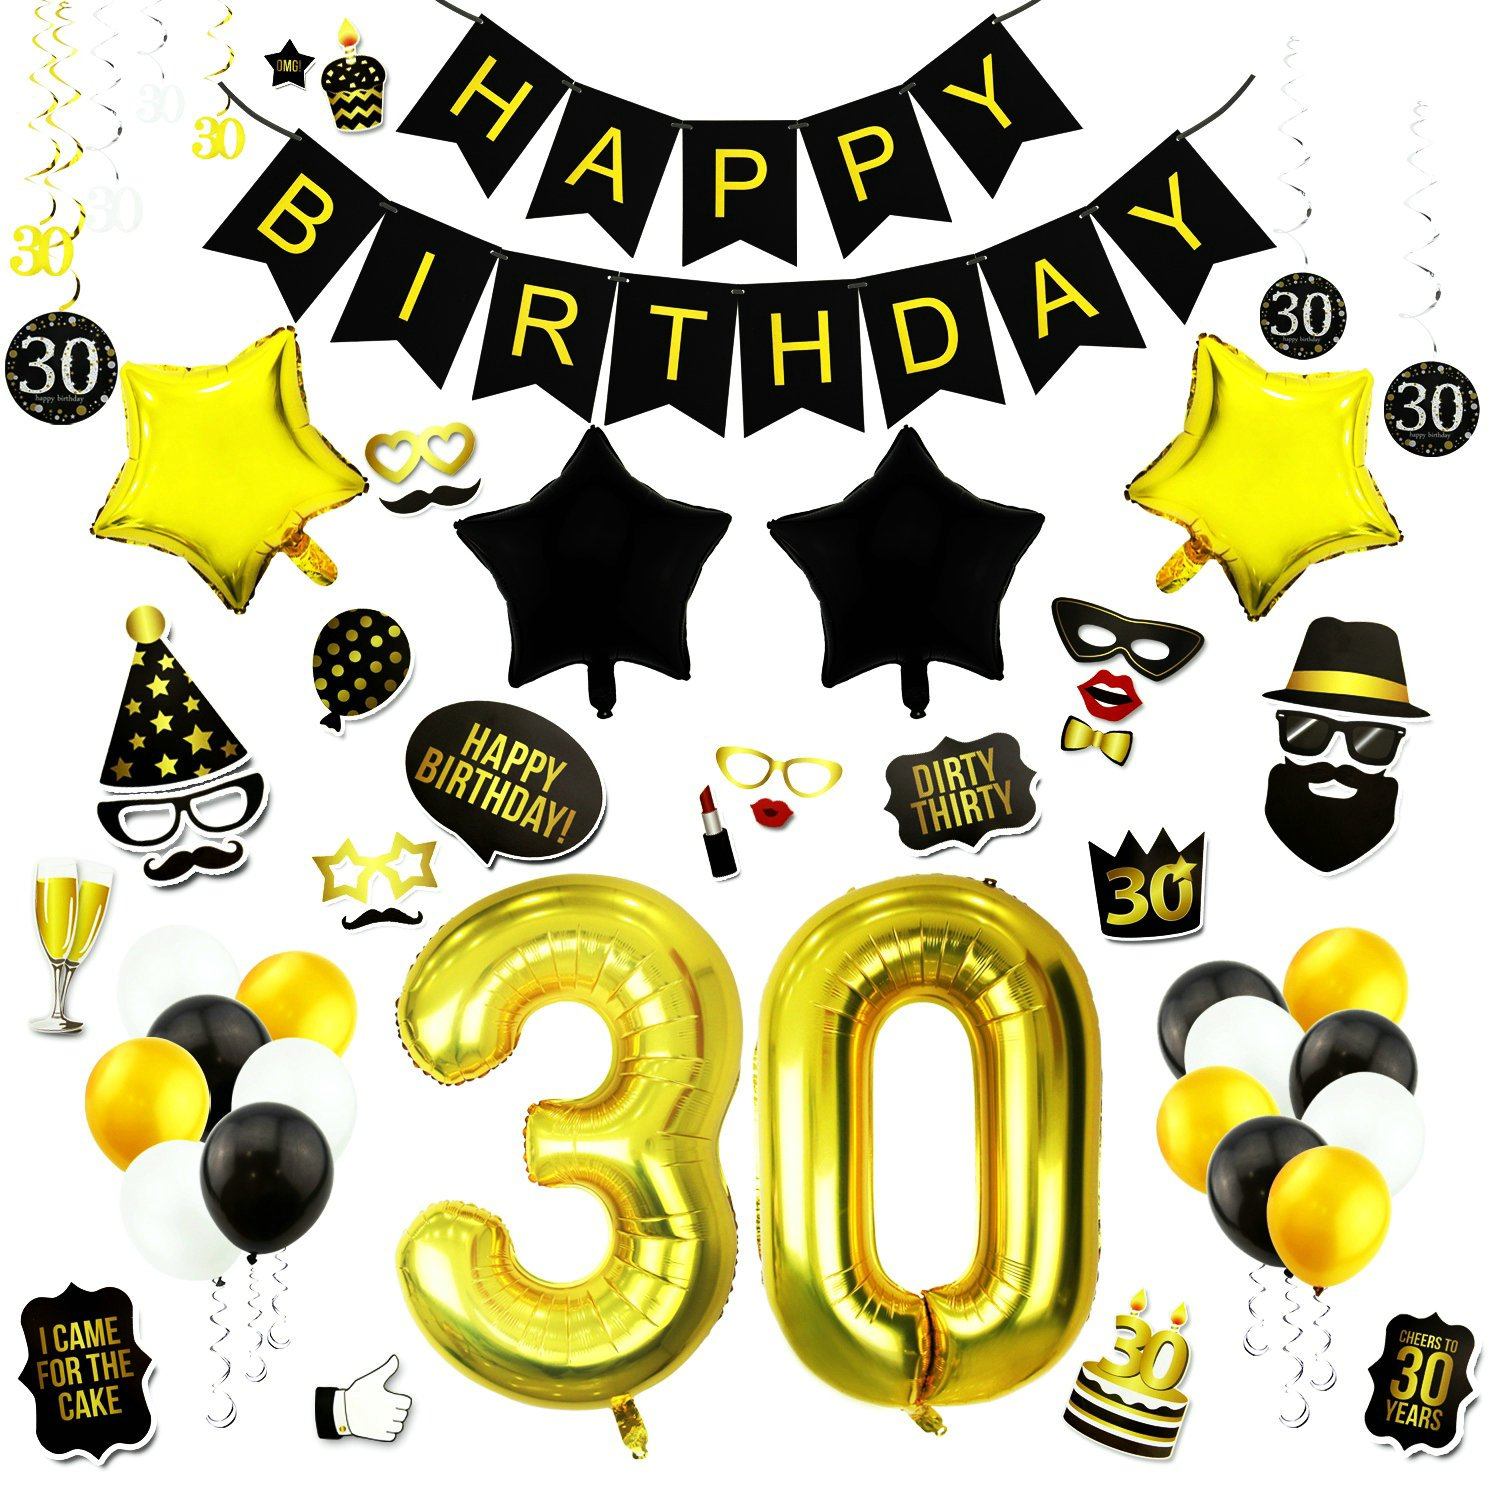 GOER 63 Pcs 30th Birthday Decorations Set,42 Inch Gold Foil Number 30 Balloons with 30th Birthday Party Photo Booth Props Birthday Banner Hanging Swirls Latex Balloon for 30th Birthday Party Supplies